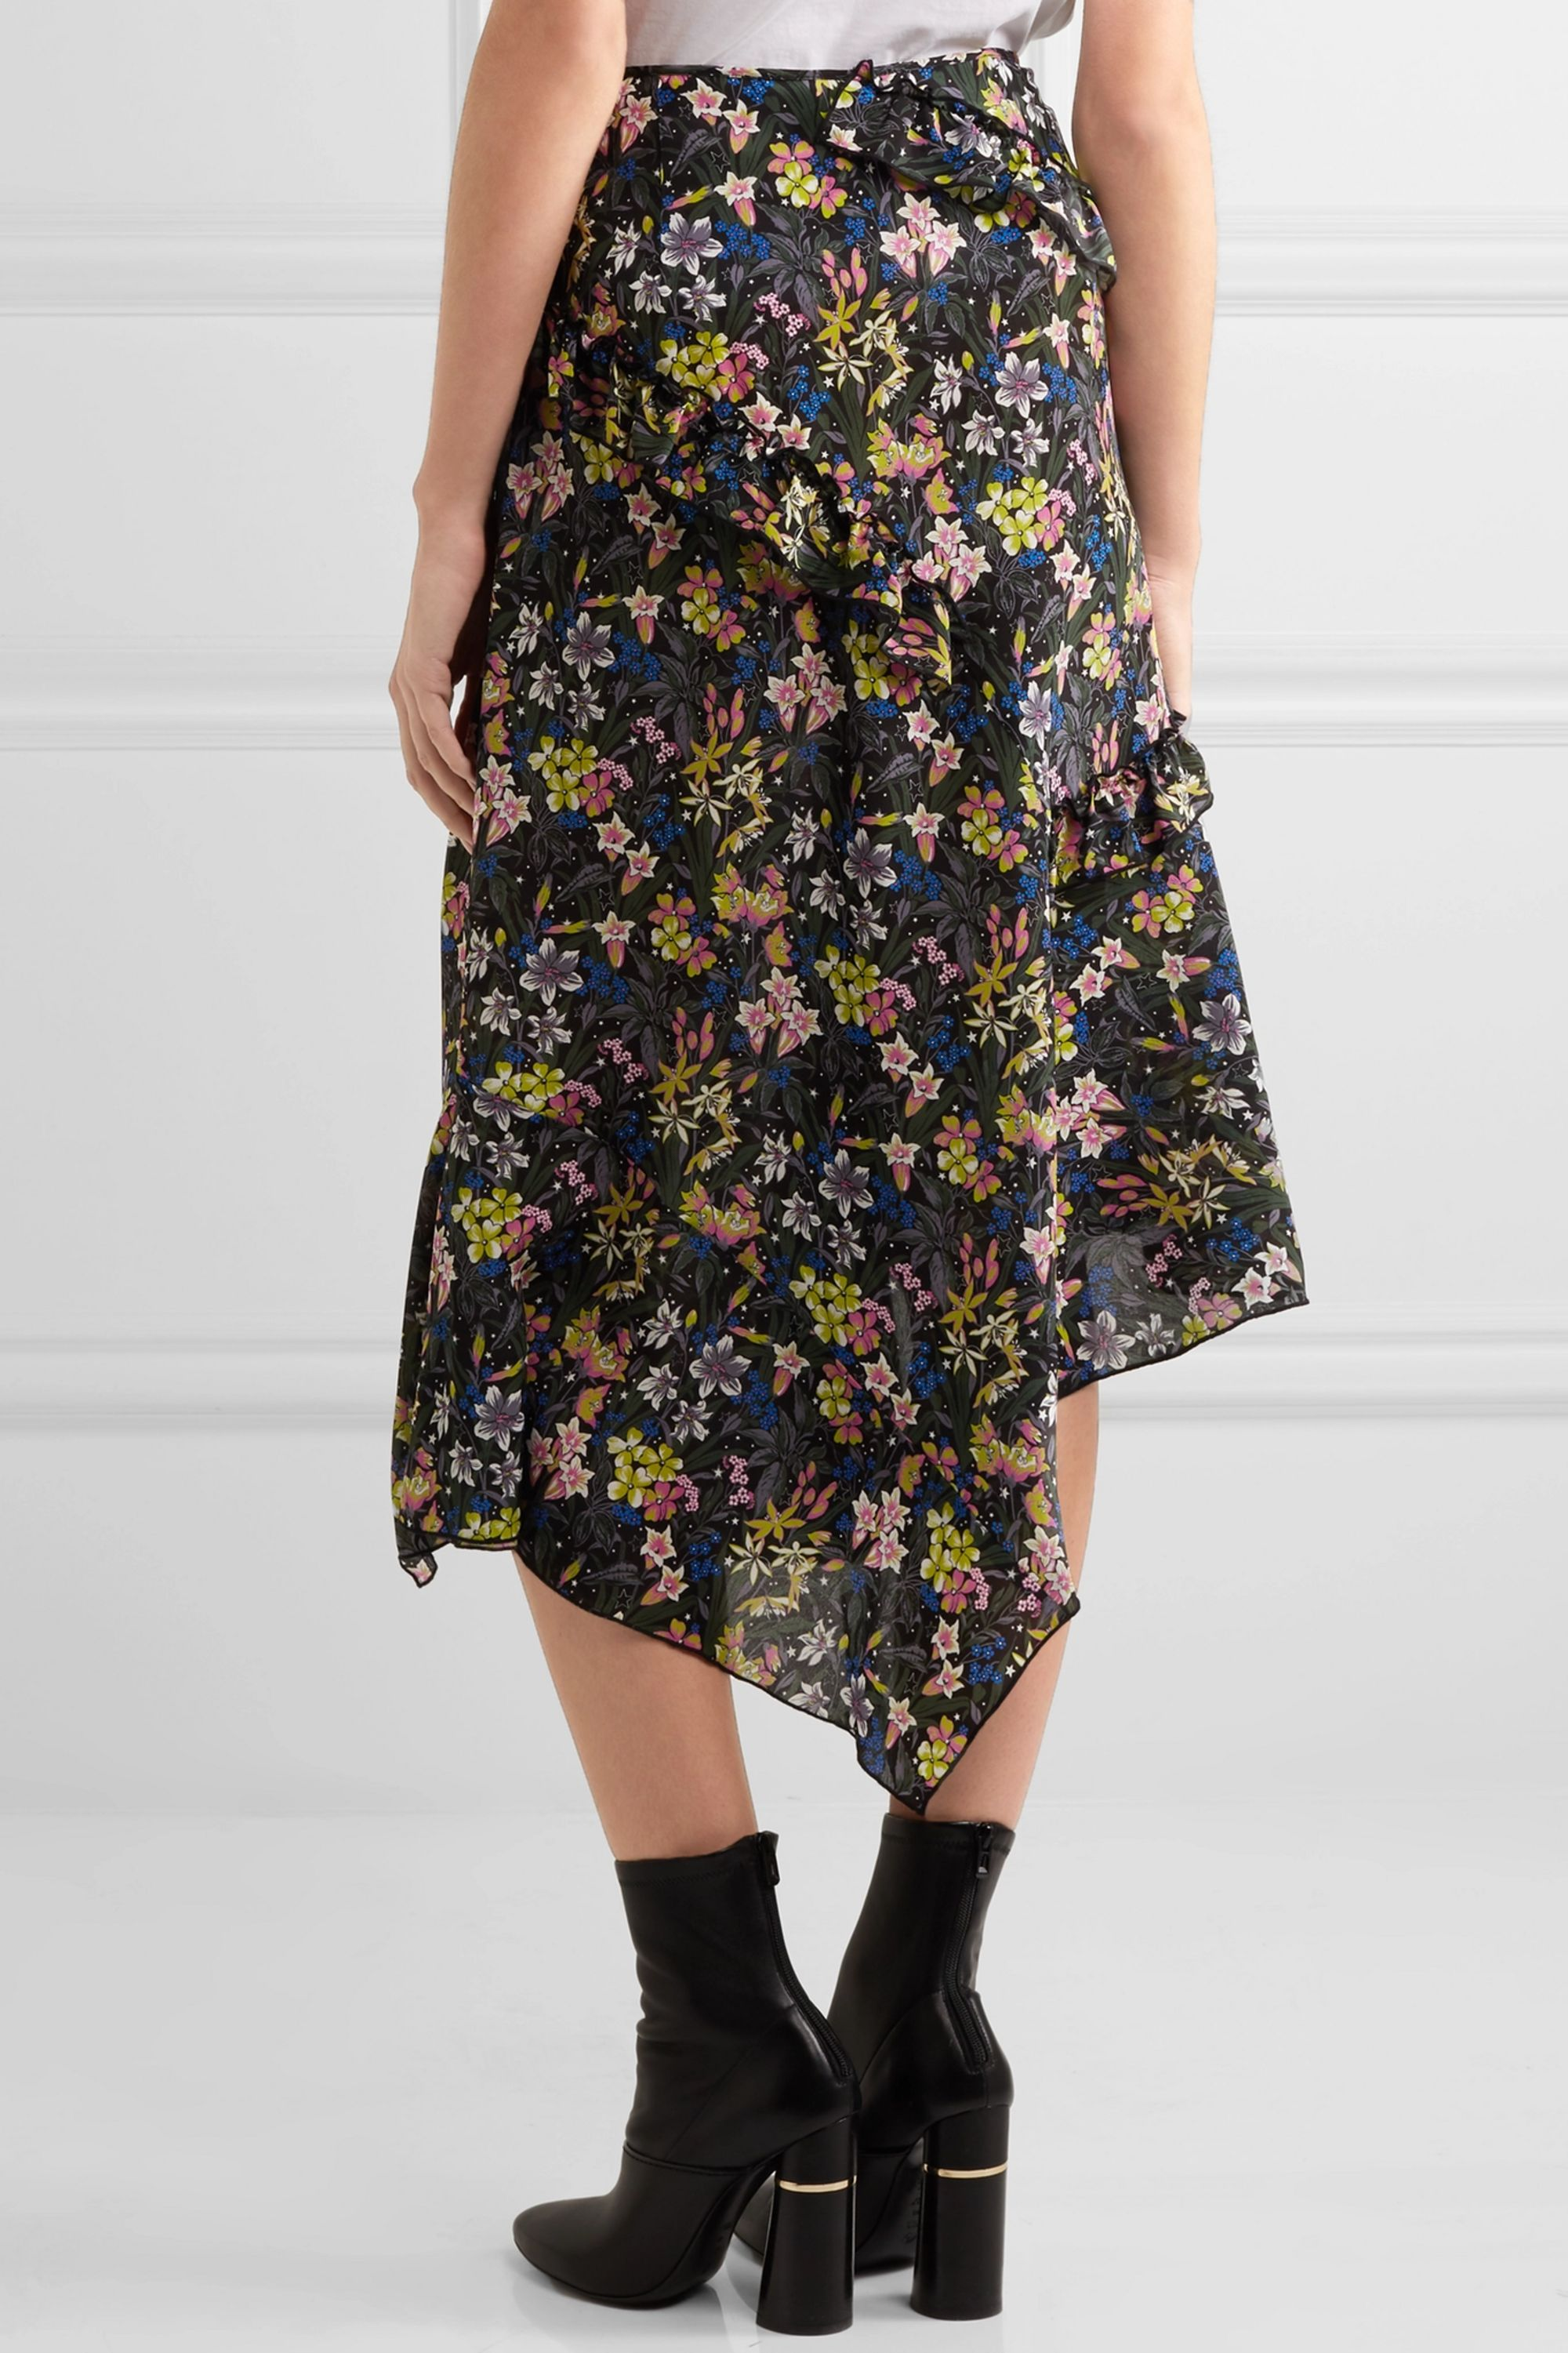 Topshop Unique Aster ruffled printed silk crepe de chine skirt